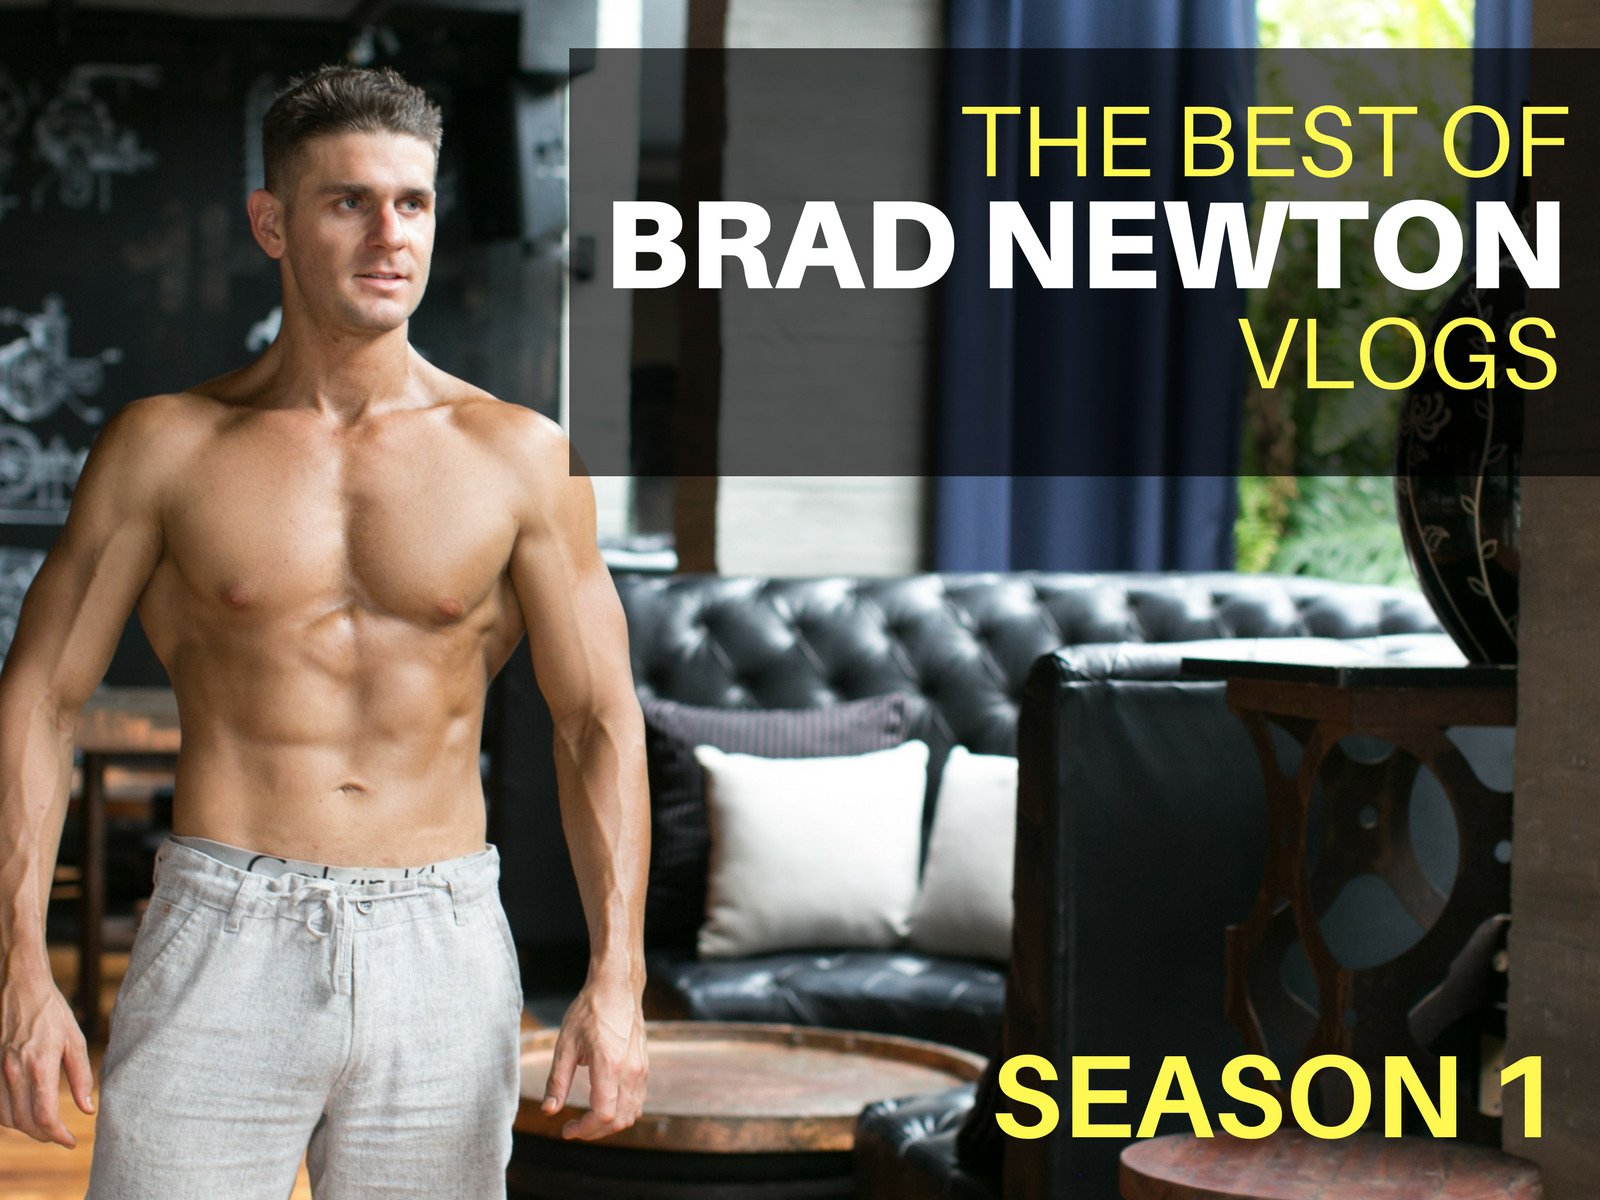 The Best of Brad Newton Vlogs - Season 1